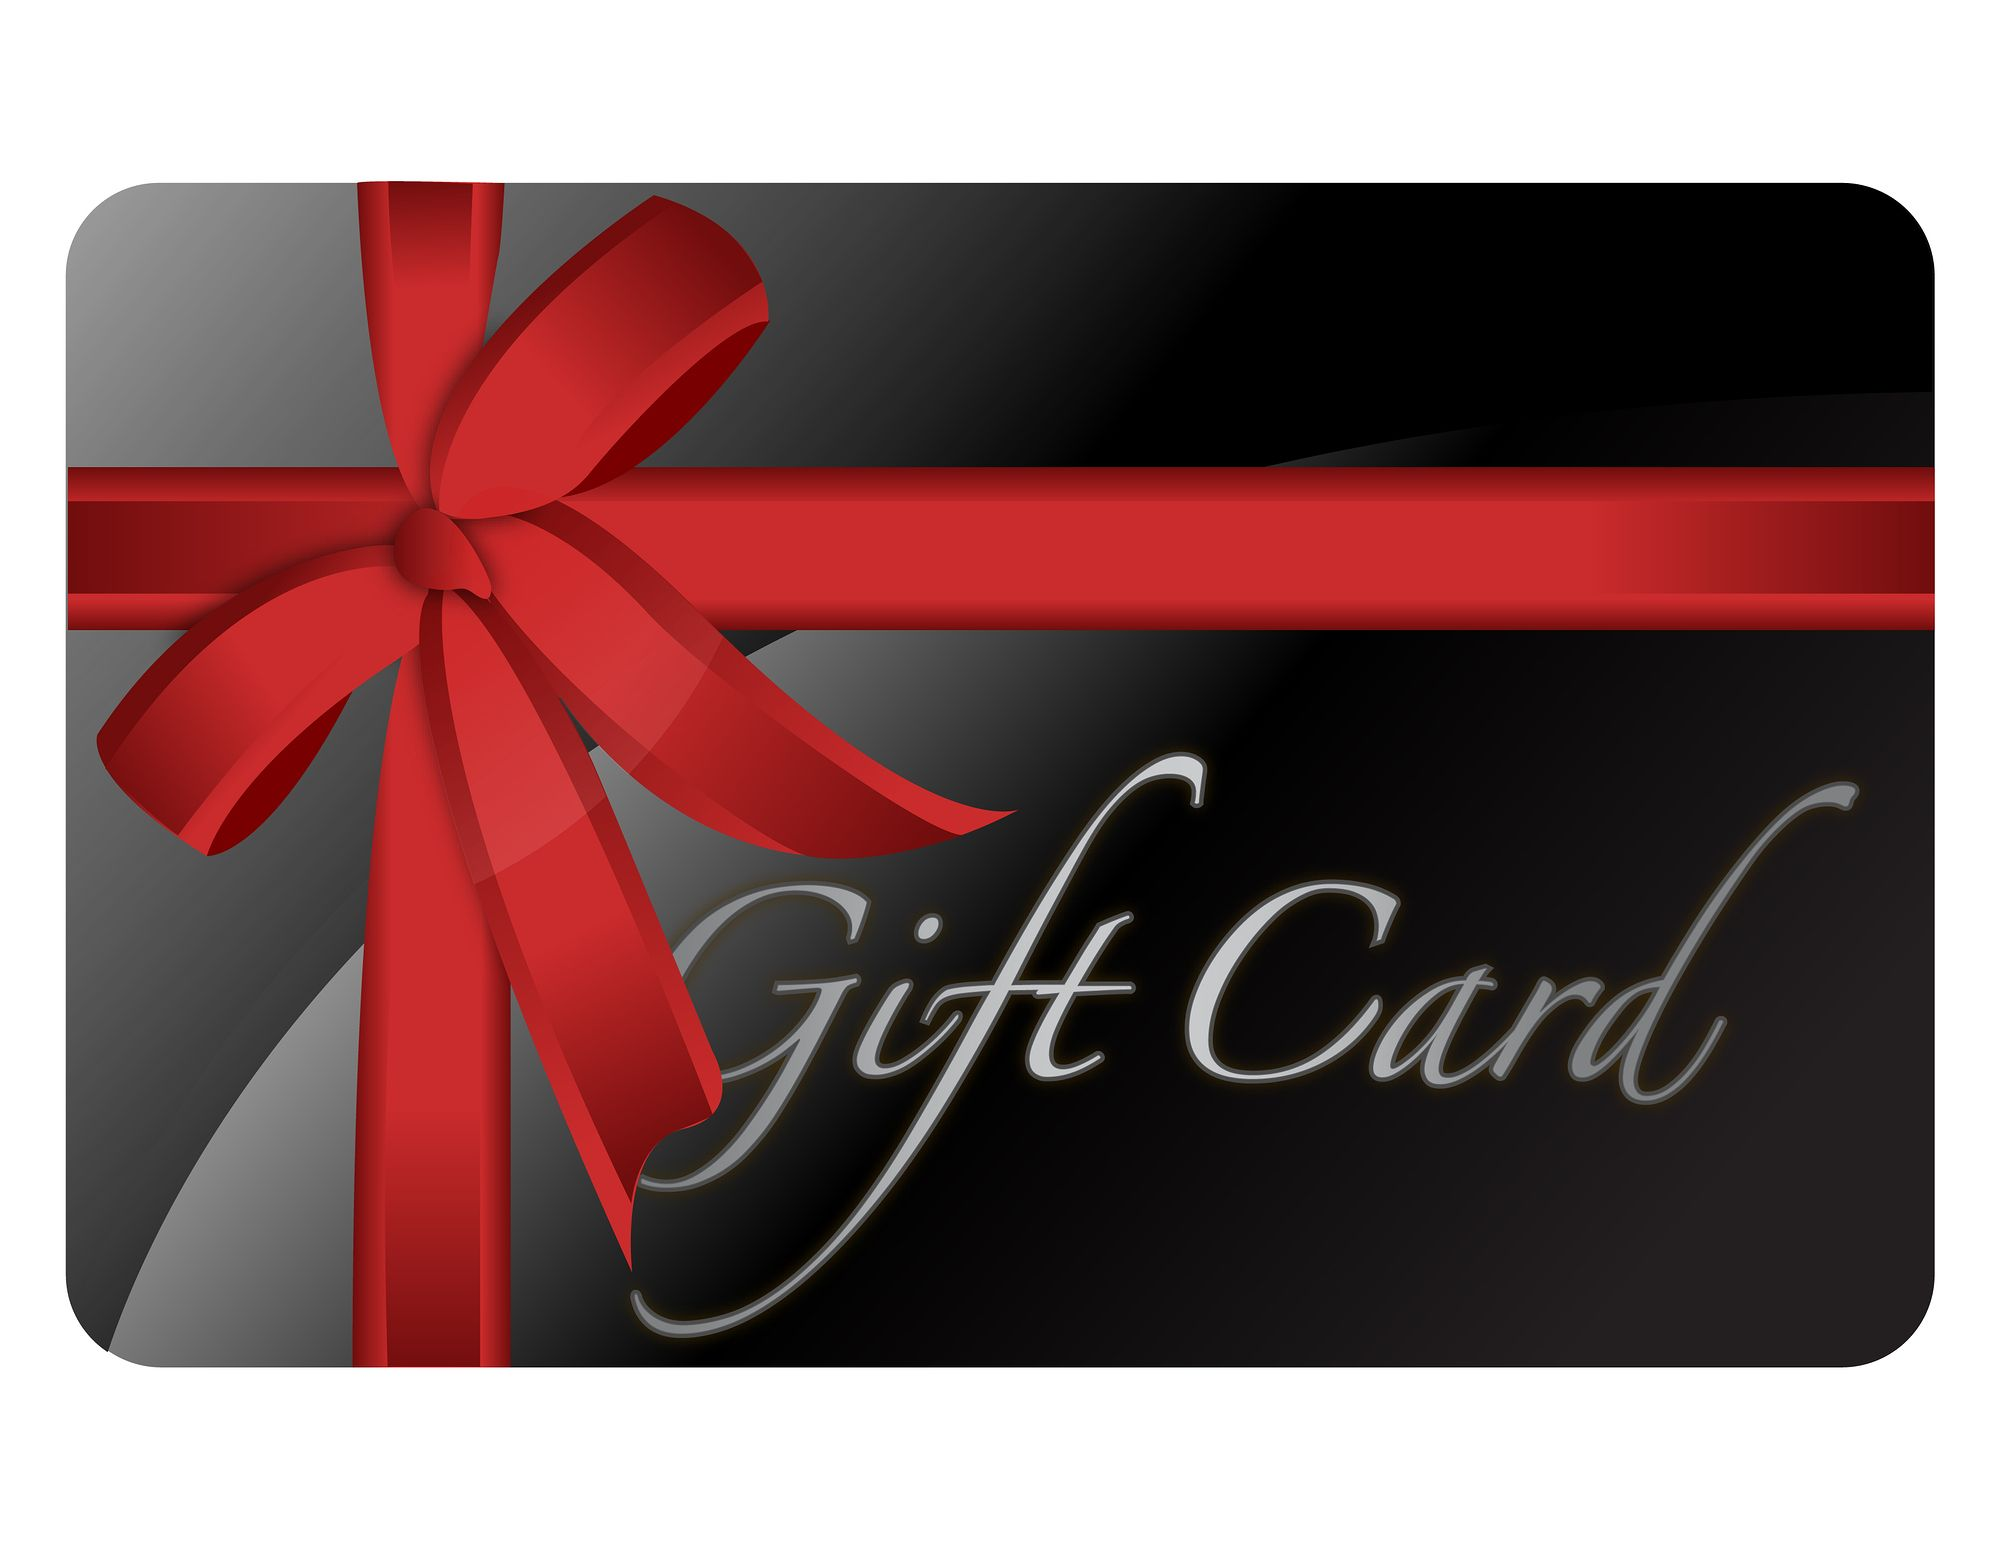 best ideas about virtual gift cards email design 17 best ideas about virtual gift cards email design email marketing design and email design inspiration